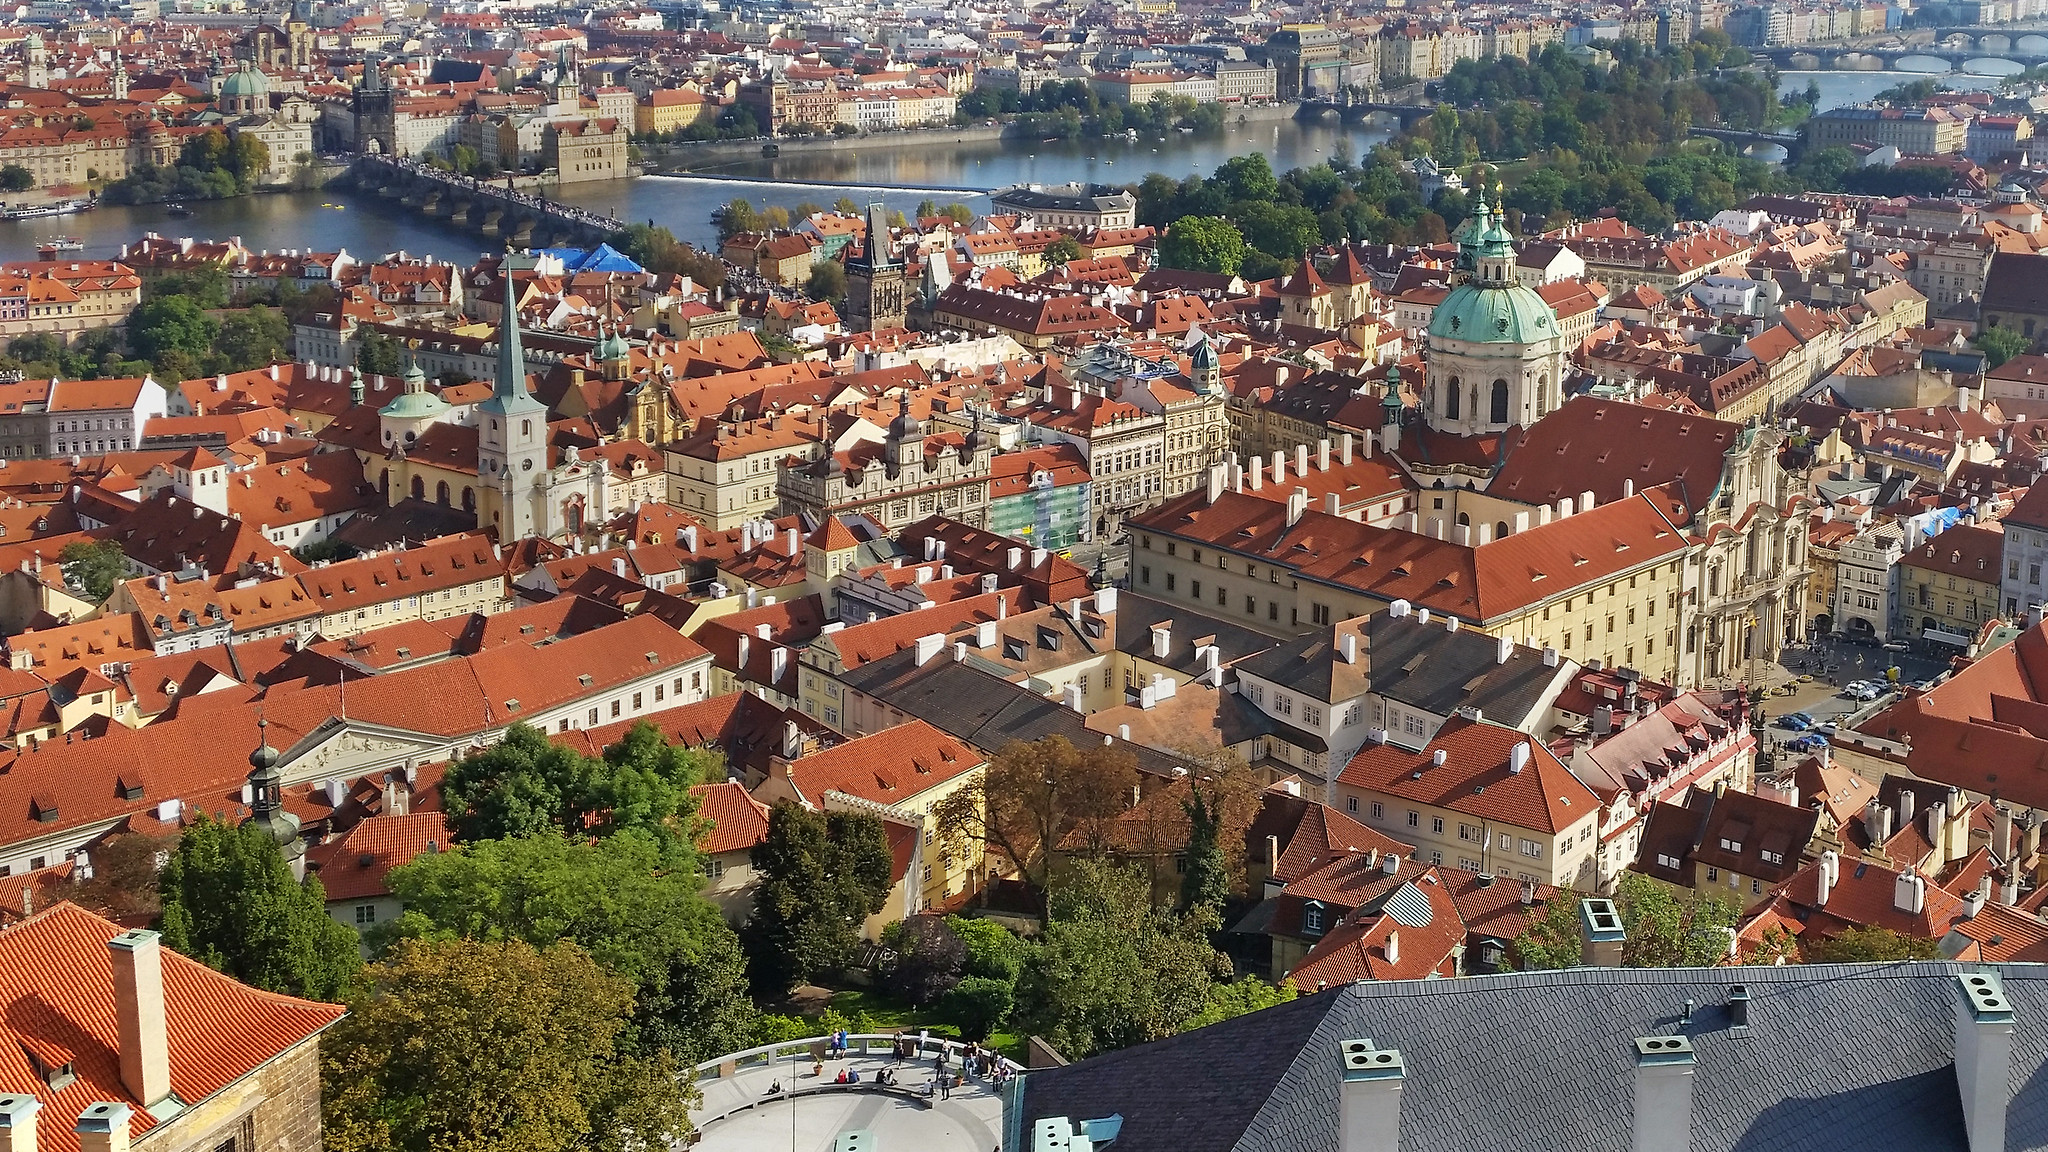 View towards Charles bridge in Prague, Czech Republic